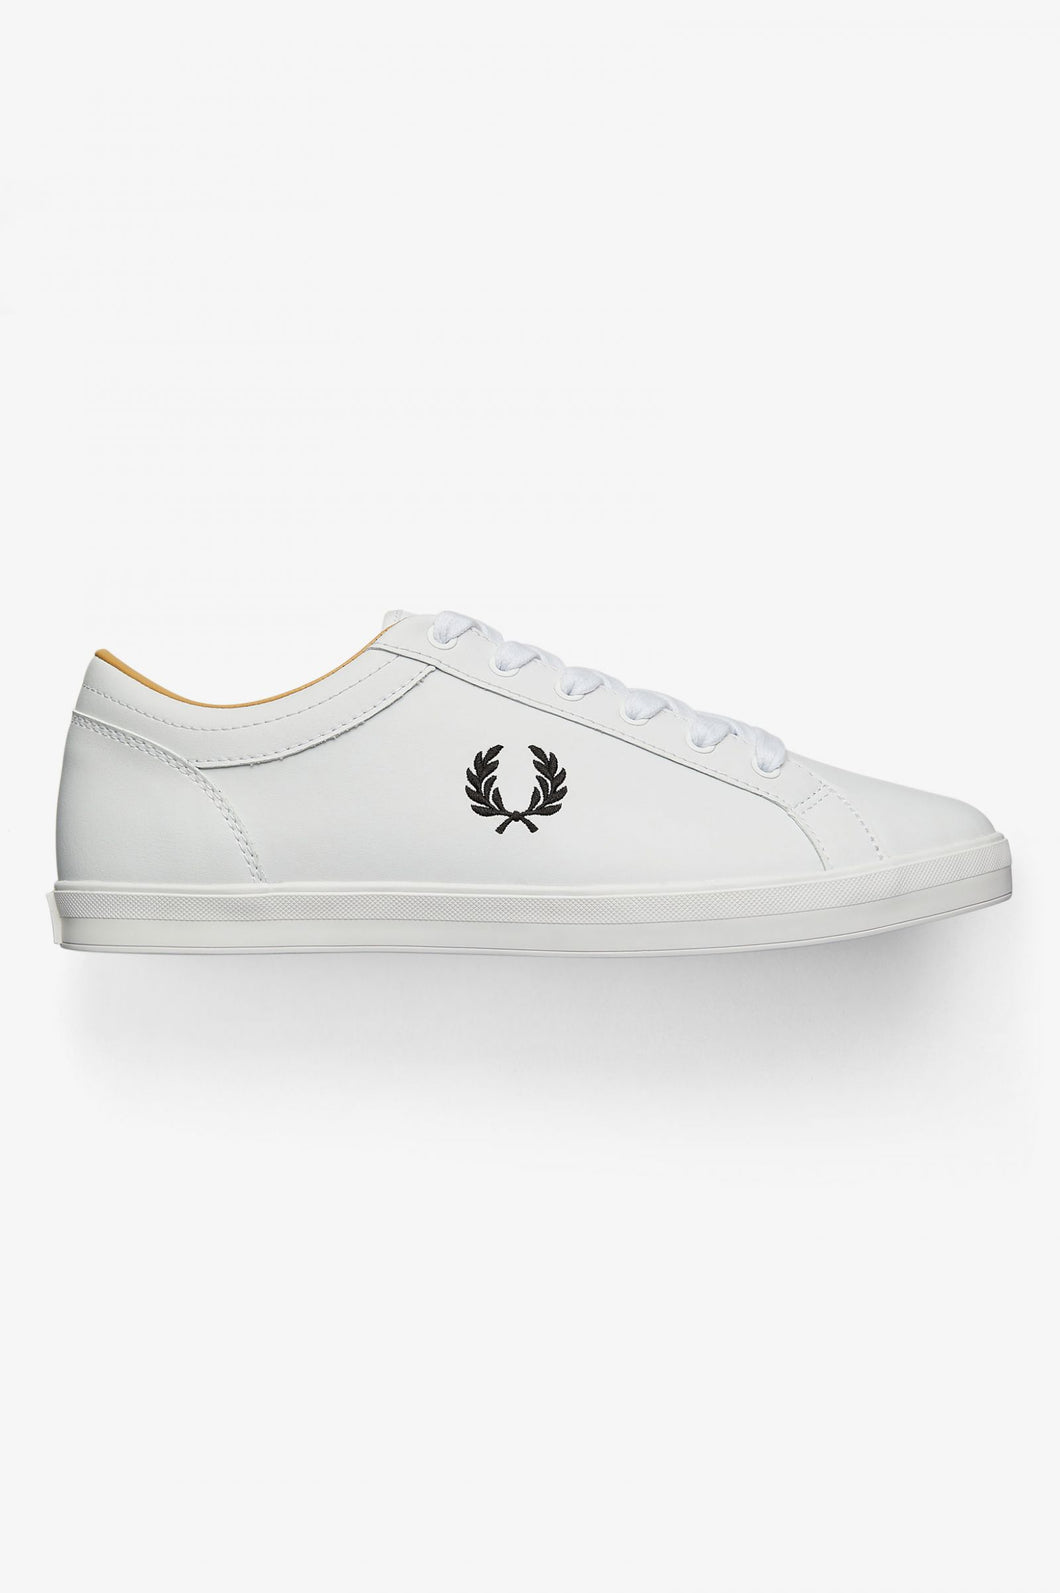 Fred Perry Trainers - Baseline Leather - White - B6158 - 100